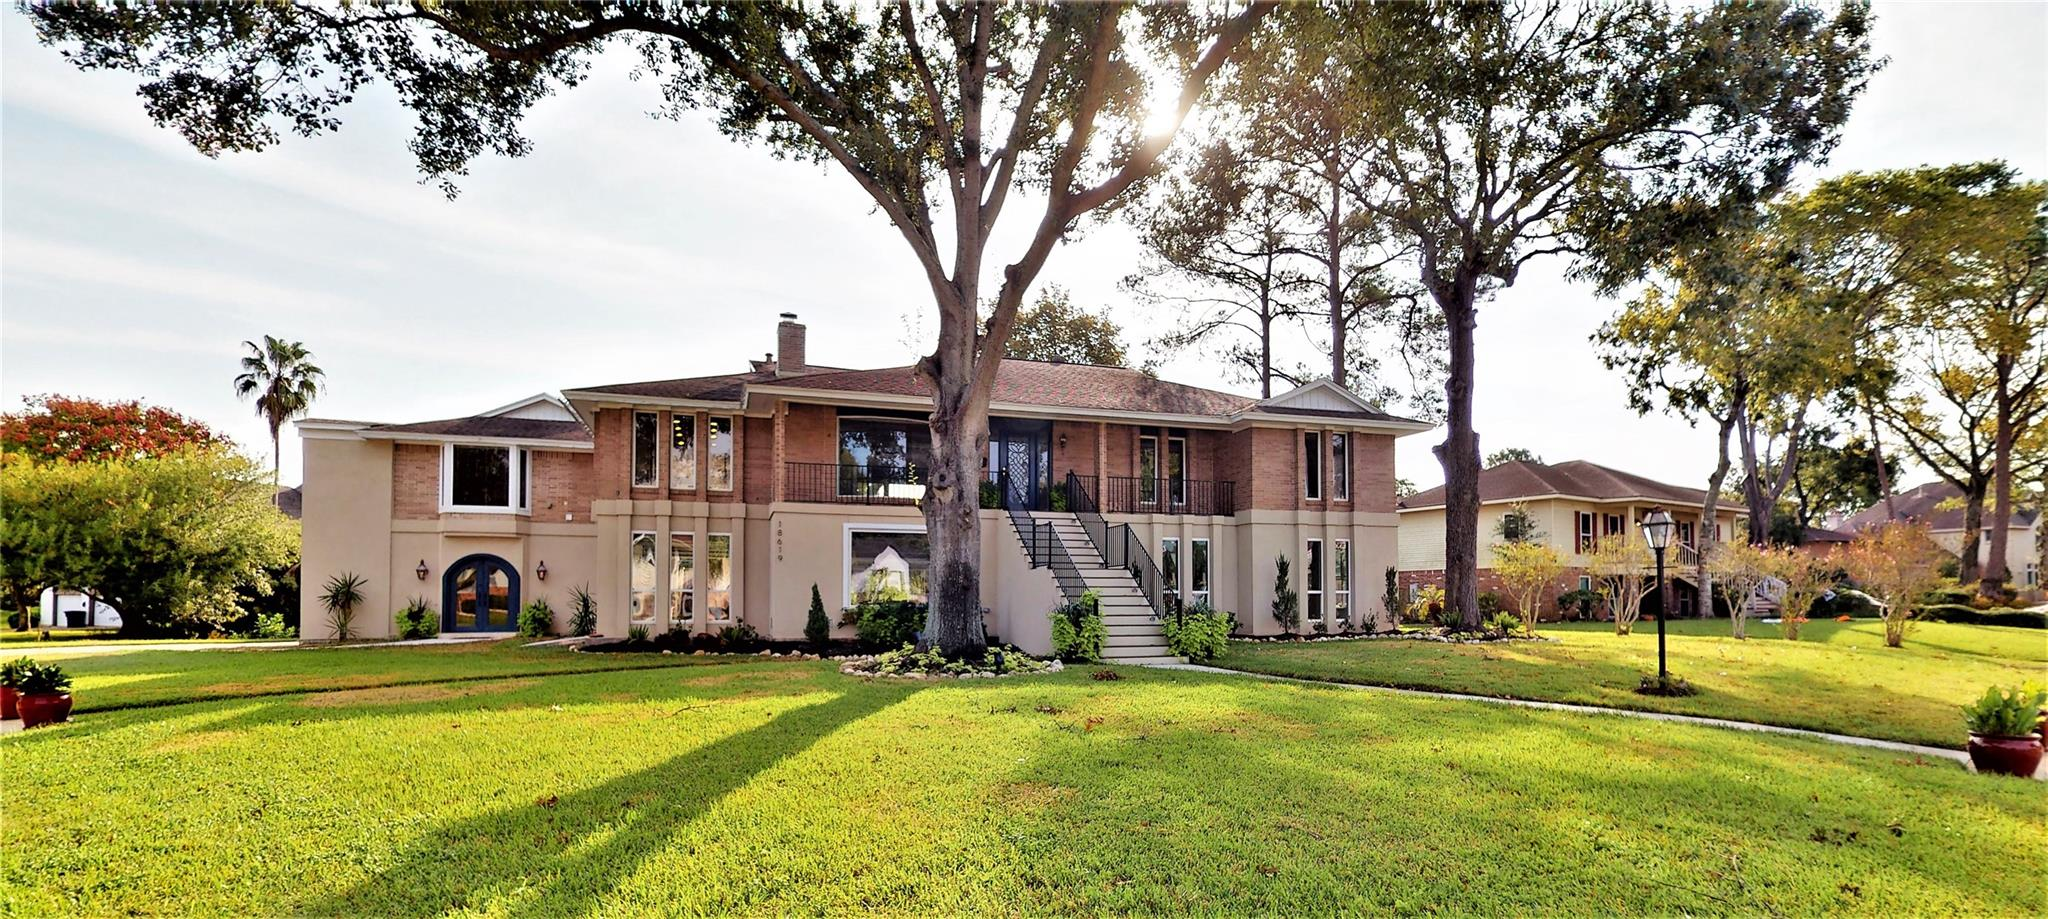 18619 Point Lookout Drive Property Photo - Houston, TX real estate listing